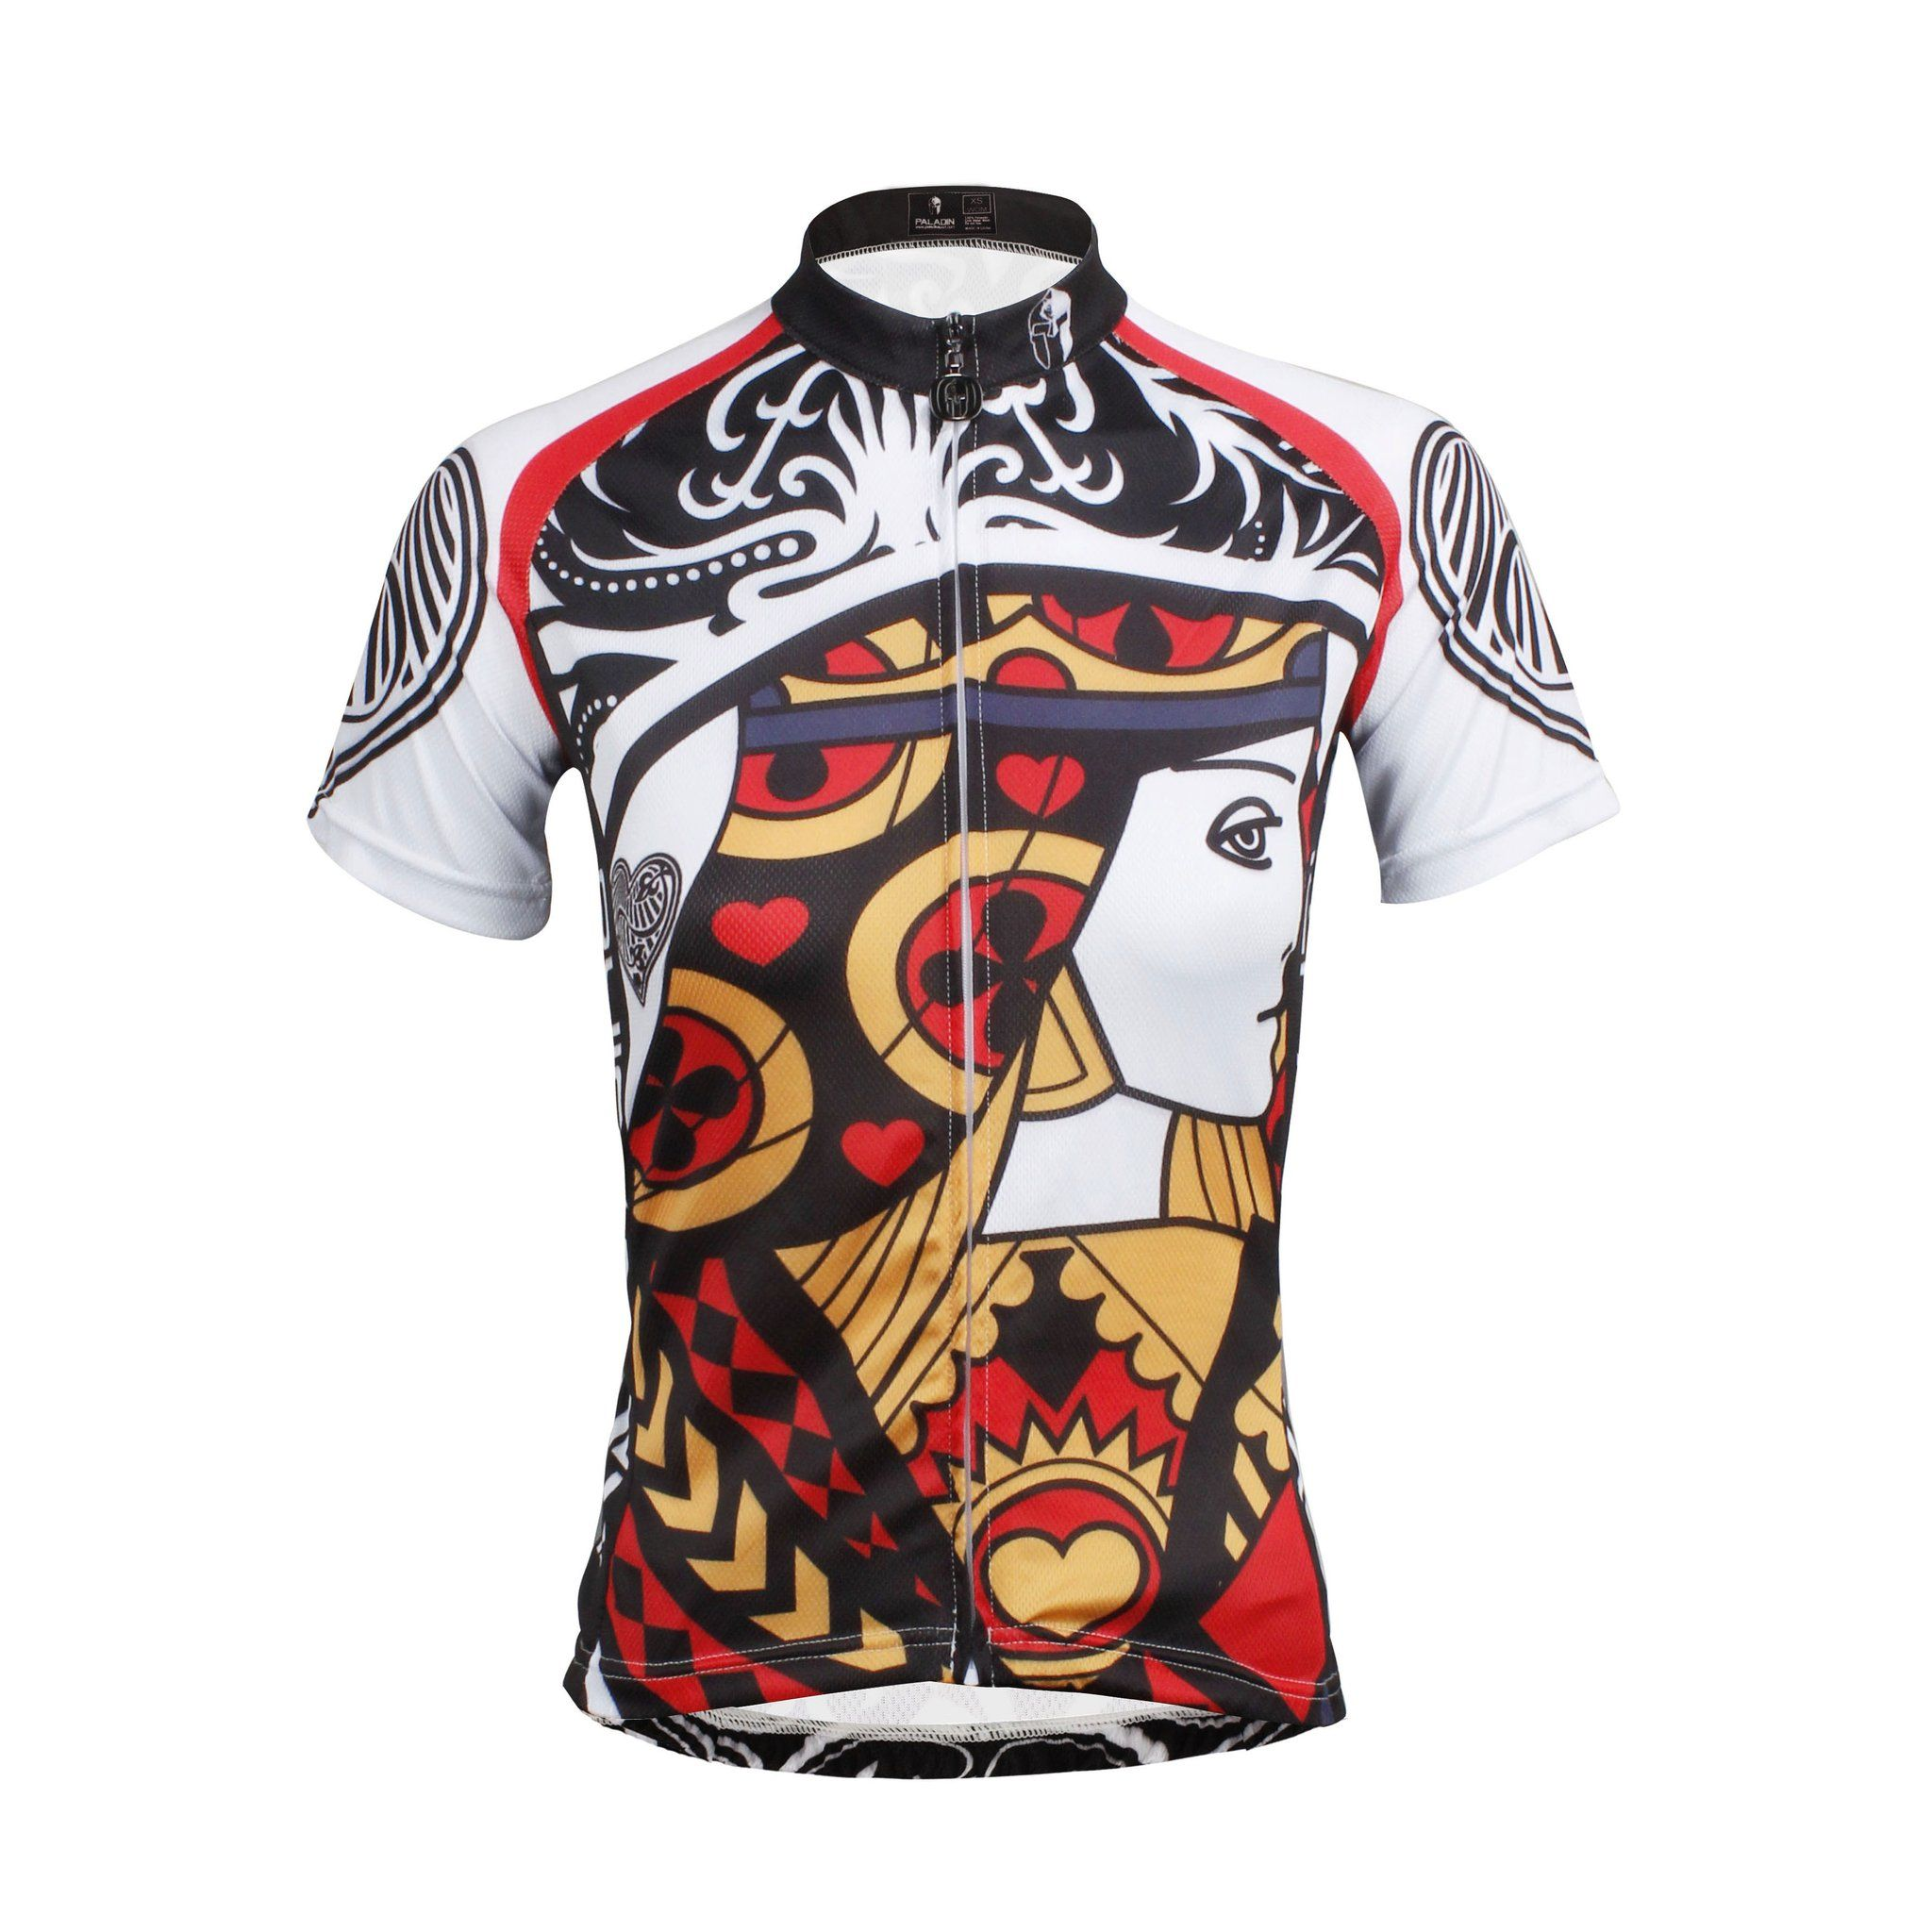 ILPALADINO Poker Face Playing Card Diamonds King Spades Jack Club Queen  Heart Queen --Short-sleeve Men s.Woman s Cycling Suit Jersey -- Apparel  Road Riding ... 469045b66